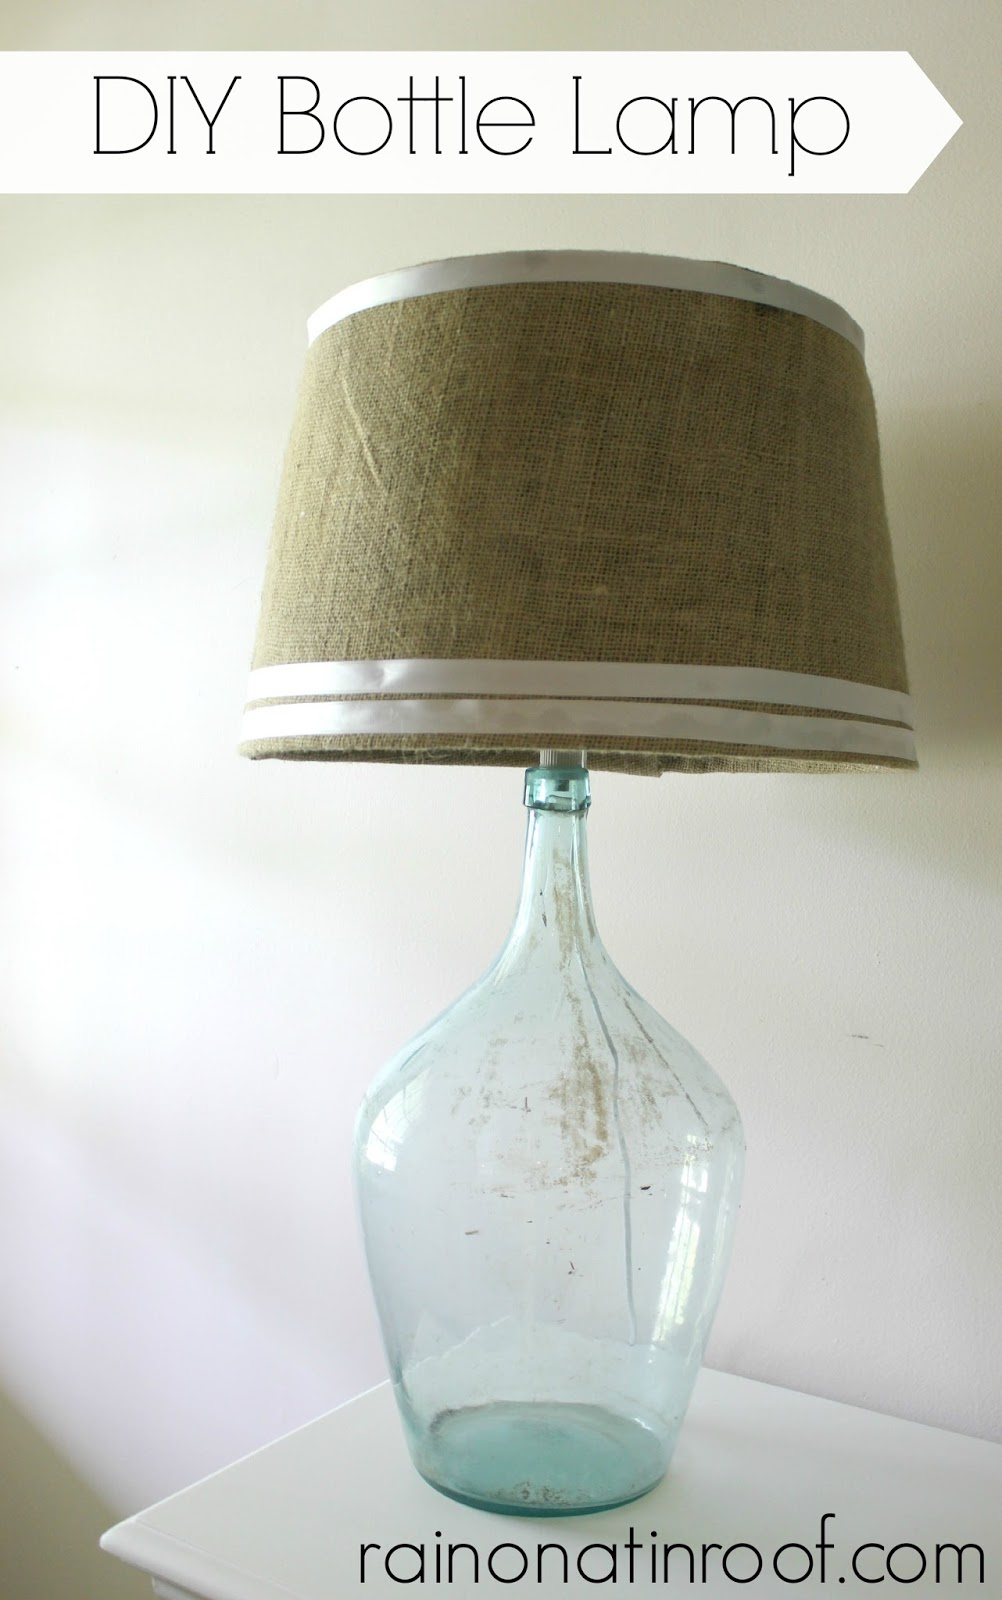 How to Make a Lamp Out of a Bottle (Easier than you think!) Diy Lamps Bottles on diy bottle garden, diy bottle hat, diy lamp ideas, diy egg carton lamp, diy bottle cup, diy box lamp, diy chandelier twine yarn, diy bottle flowers, end table with built in lamp, diy rope lamp shade, diy table lamp, diy shelves wine bottles, diy oil lamp, diy bottle vase, diy bottle art, diy bottle furniture, diy glittered wine bottles, diy projects, diy string pendant lamp, diy egg-carton ideas,